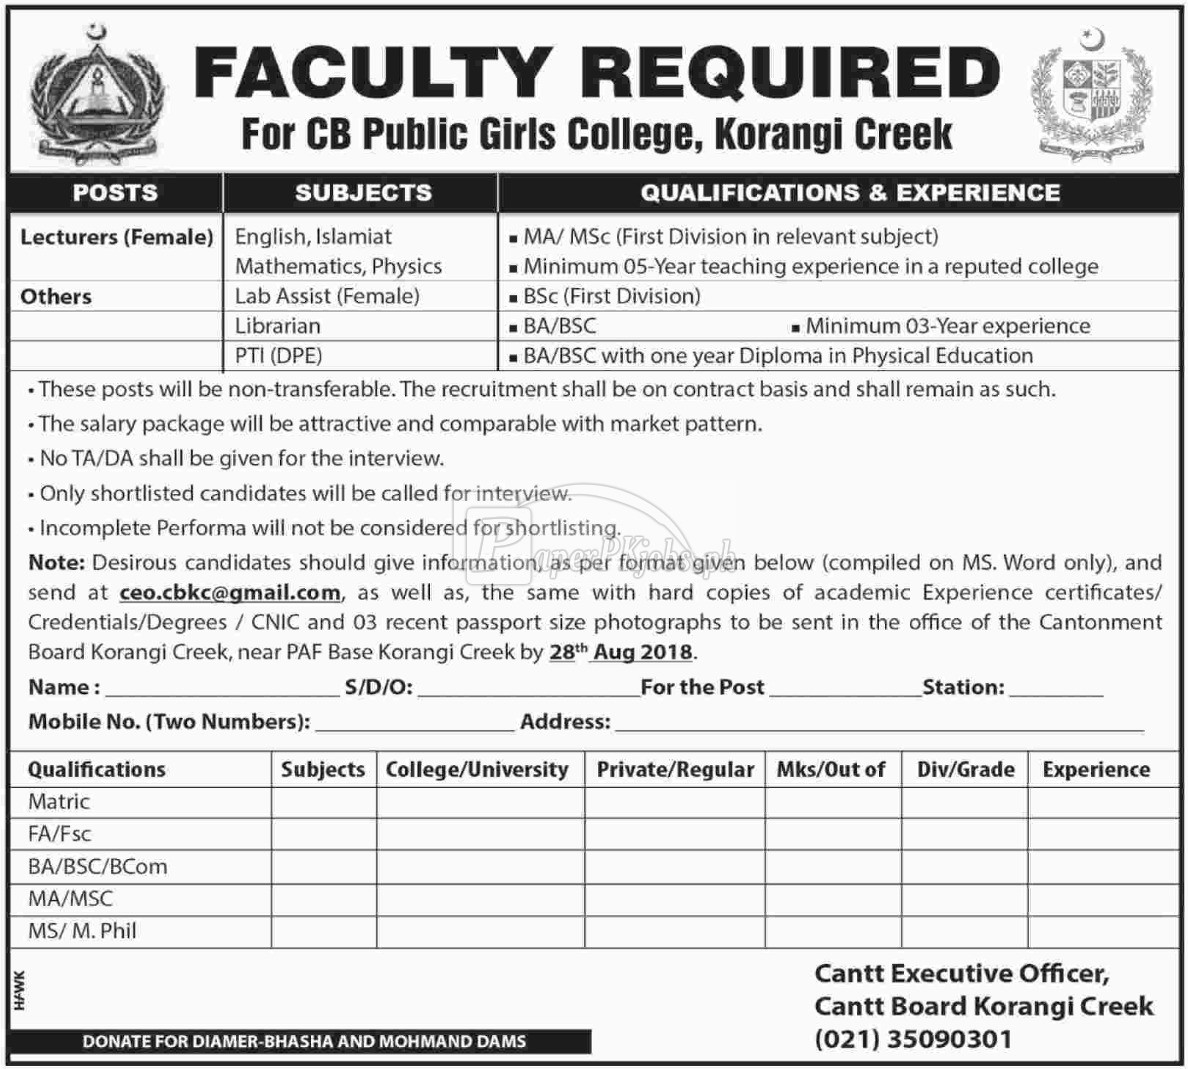 CB Public Girls College Korangi Creek Jobs 2018